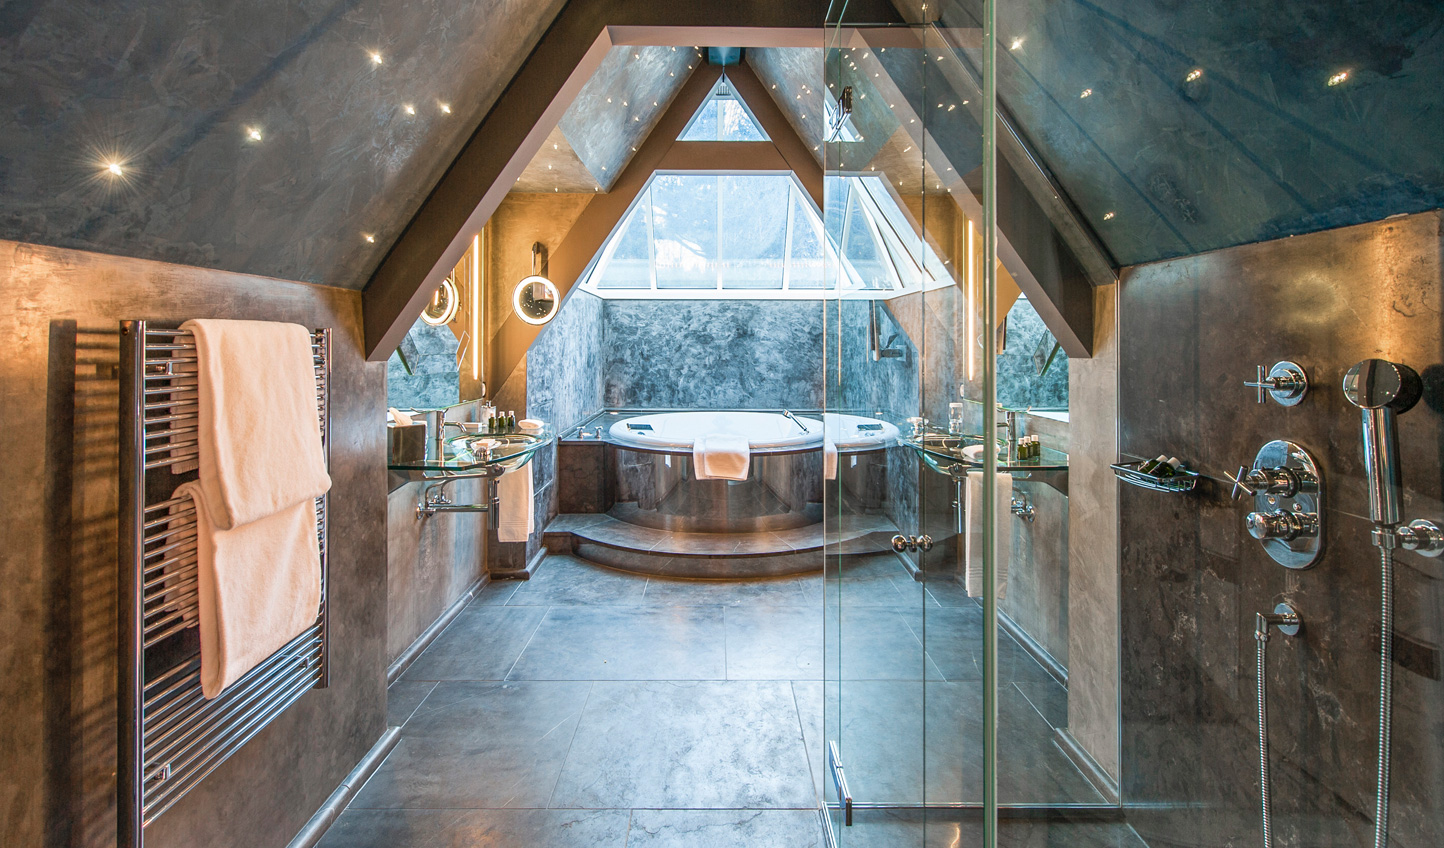 Sink into a hot bath as you gaze up at the stars above in the glass-roofed jacuzzi bath of Suite Etoile